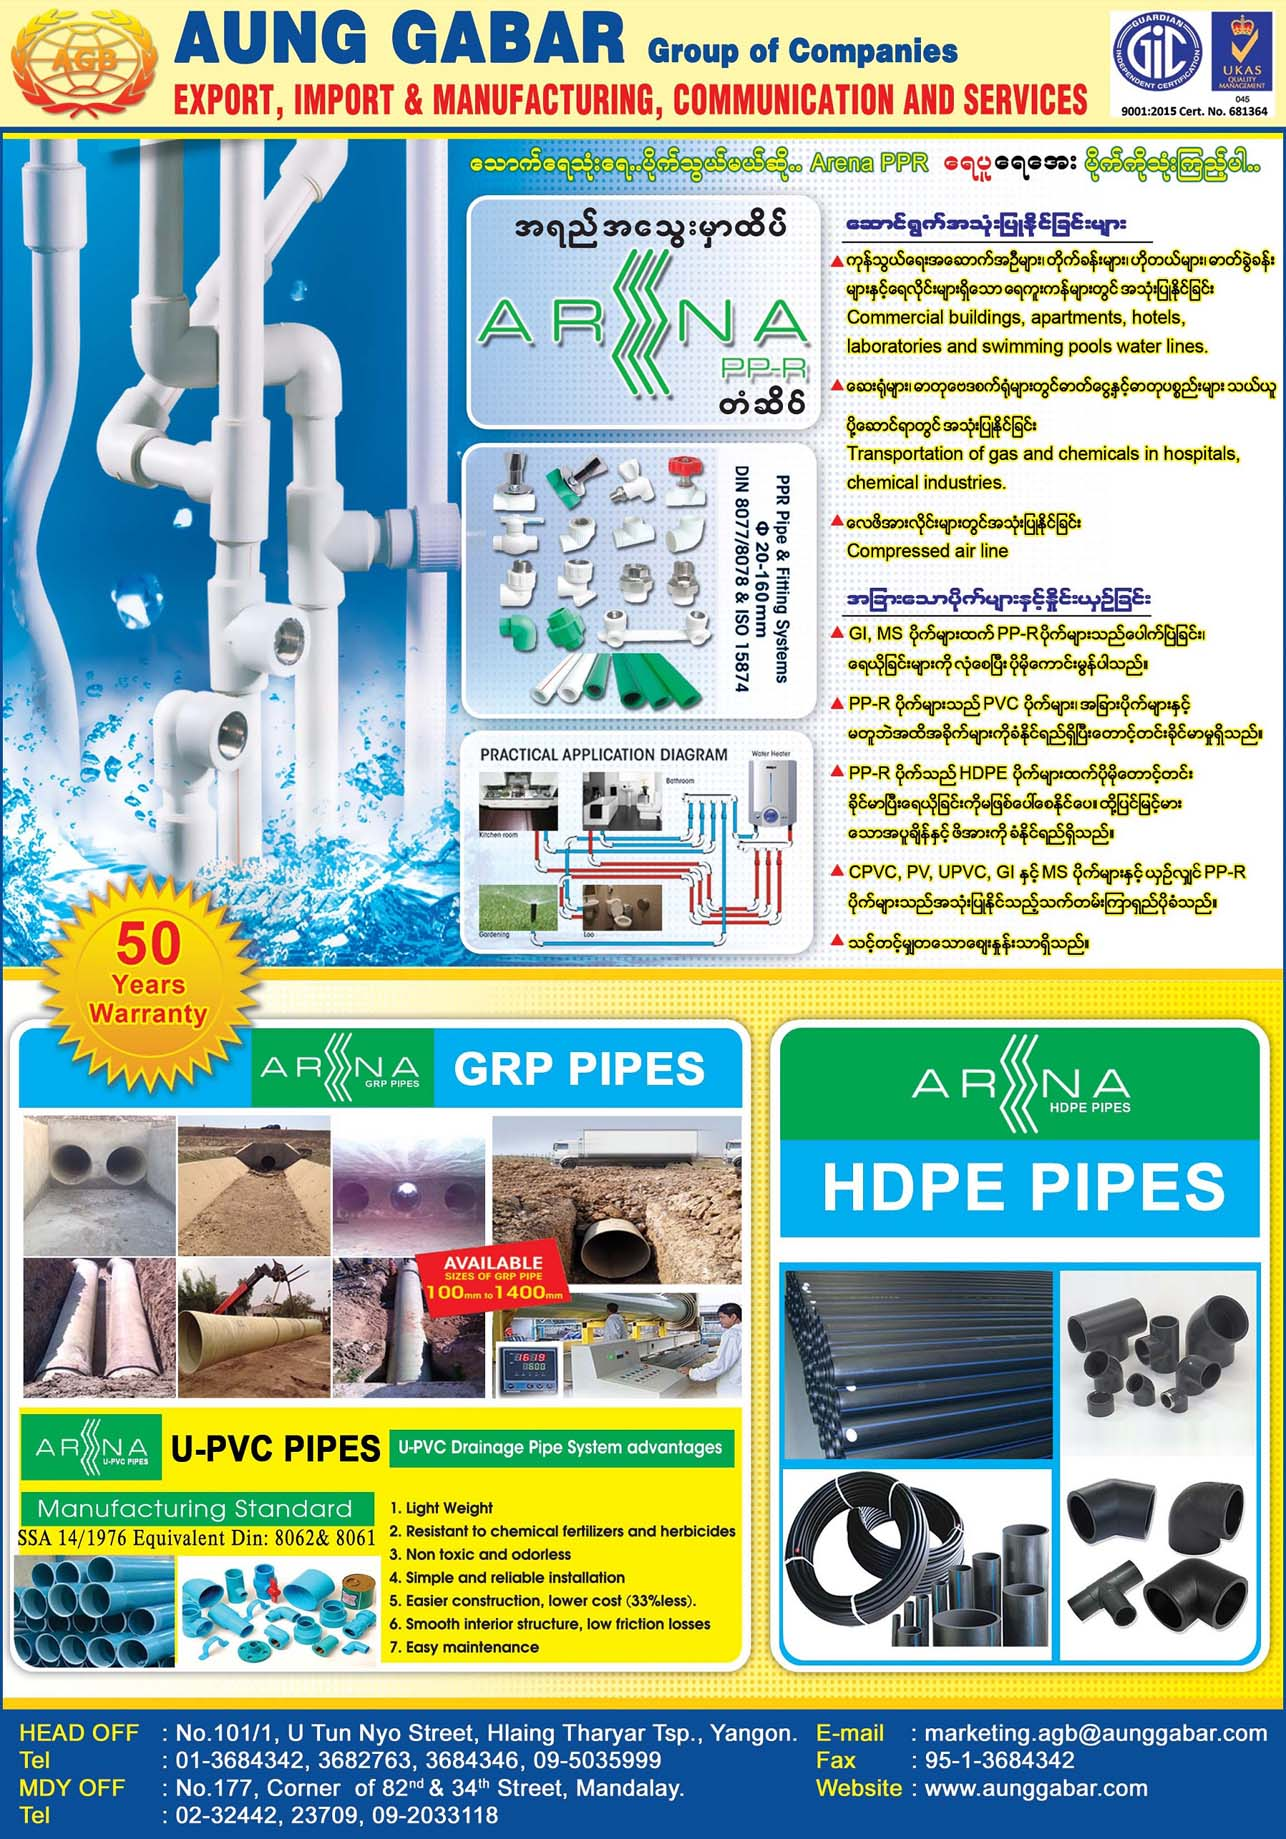 Aung Gabar Group of Companies